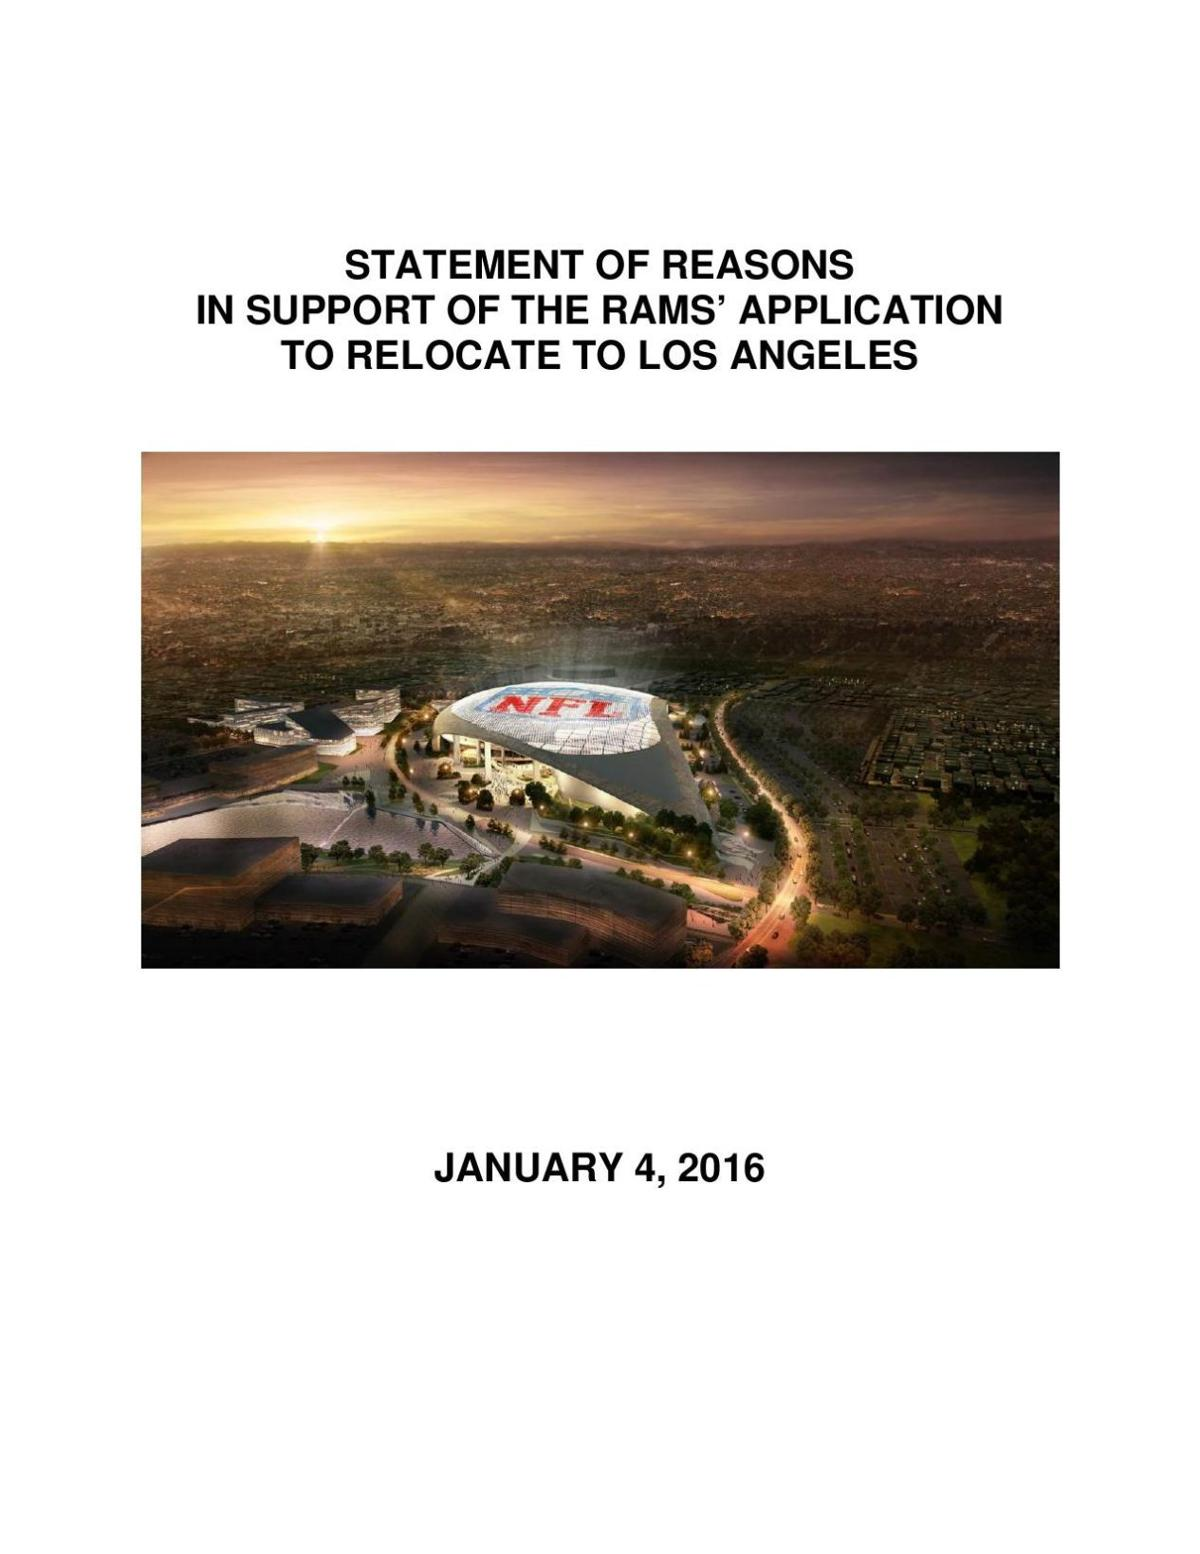 Rams NFL relocation submission